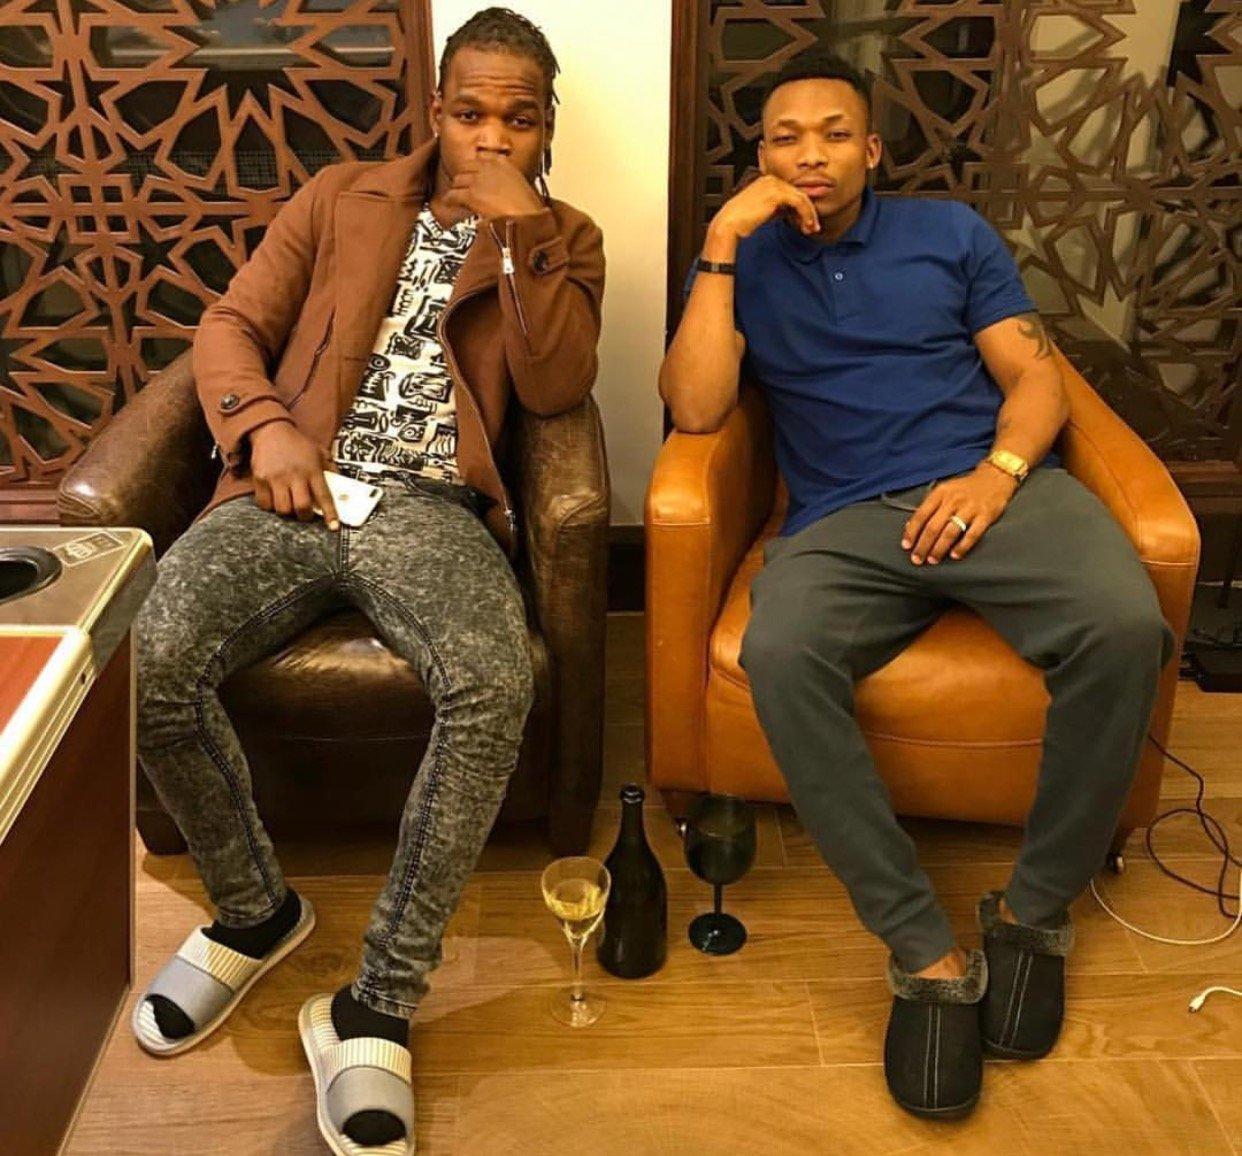 Otile Brown and Timmy Tdat exchange blows at a private party